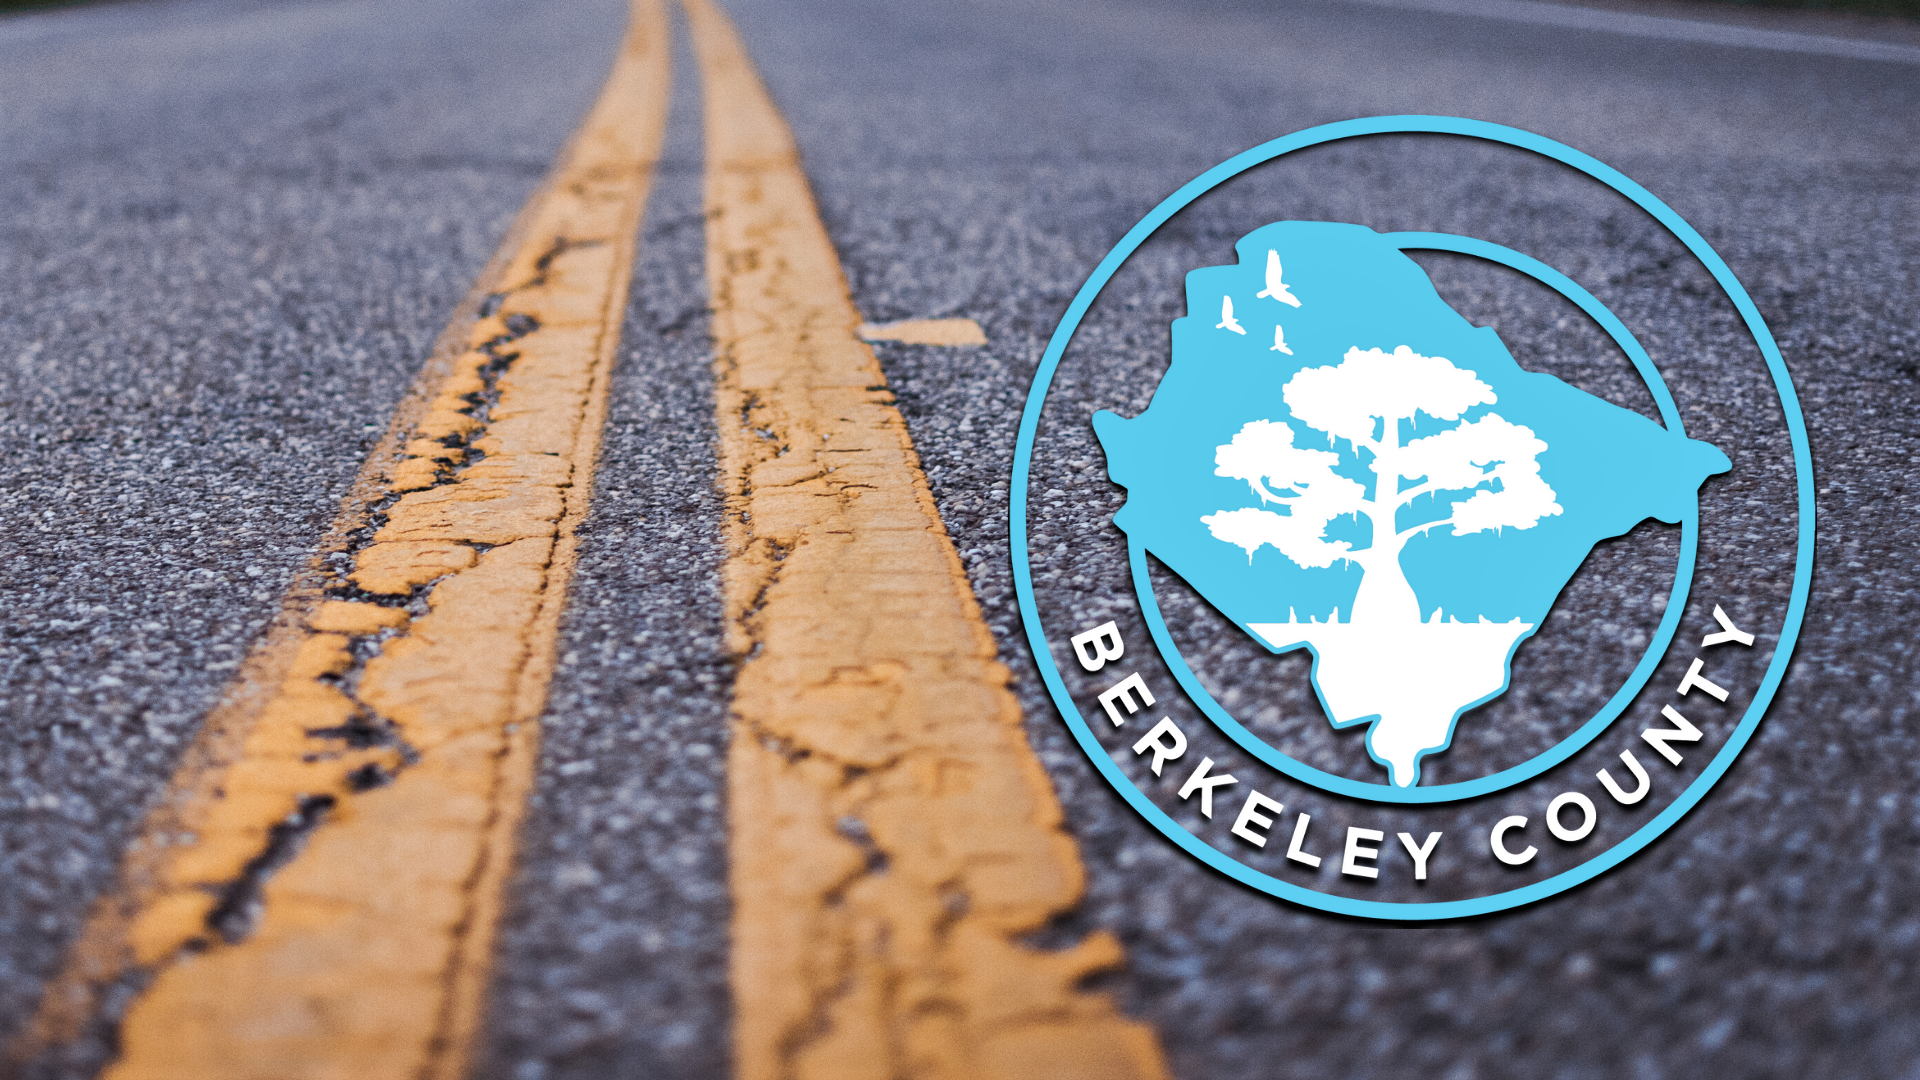 Berkeley County Council Awards Contract for Henry Brown Blvd. Phase 2